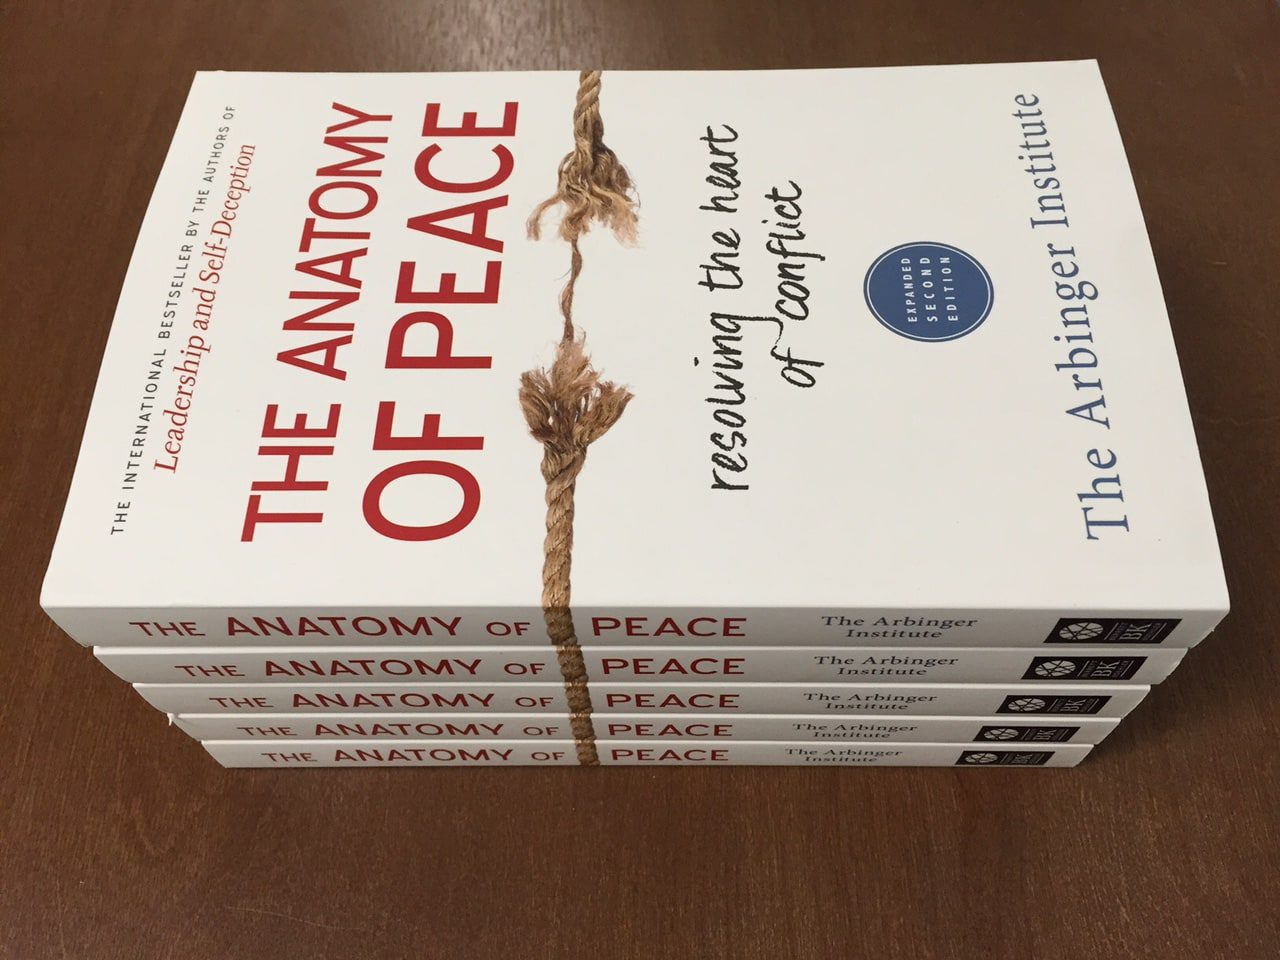 Featured on Friday: #AnatomyOfPeace Author @Arbinger